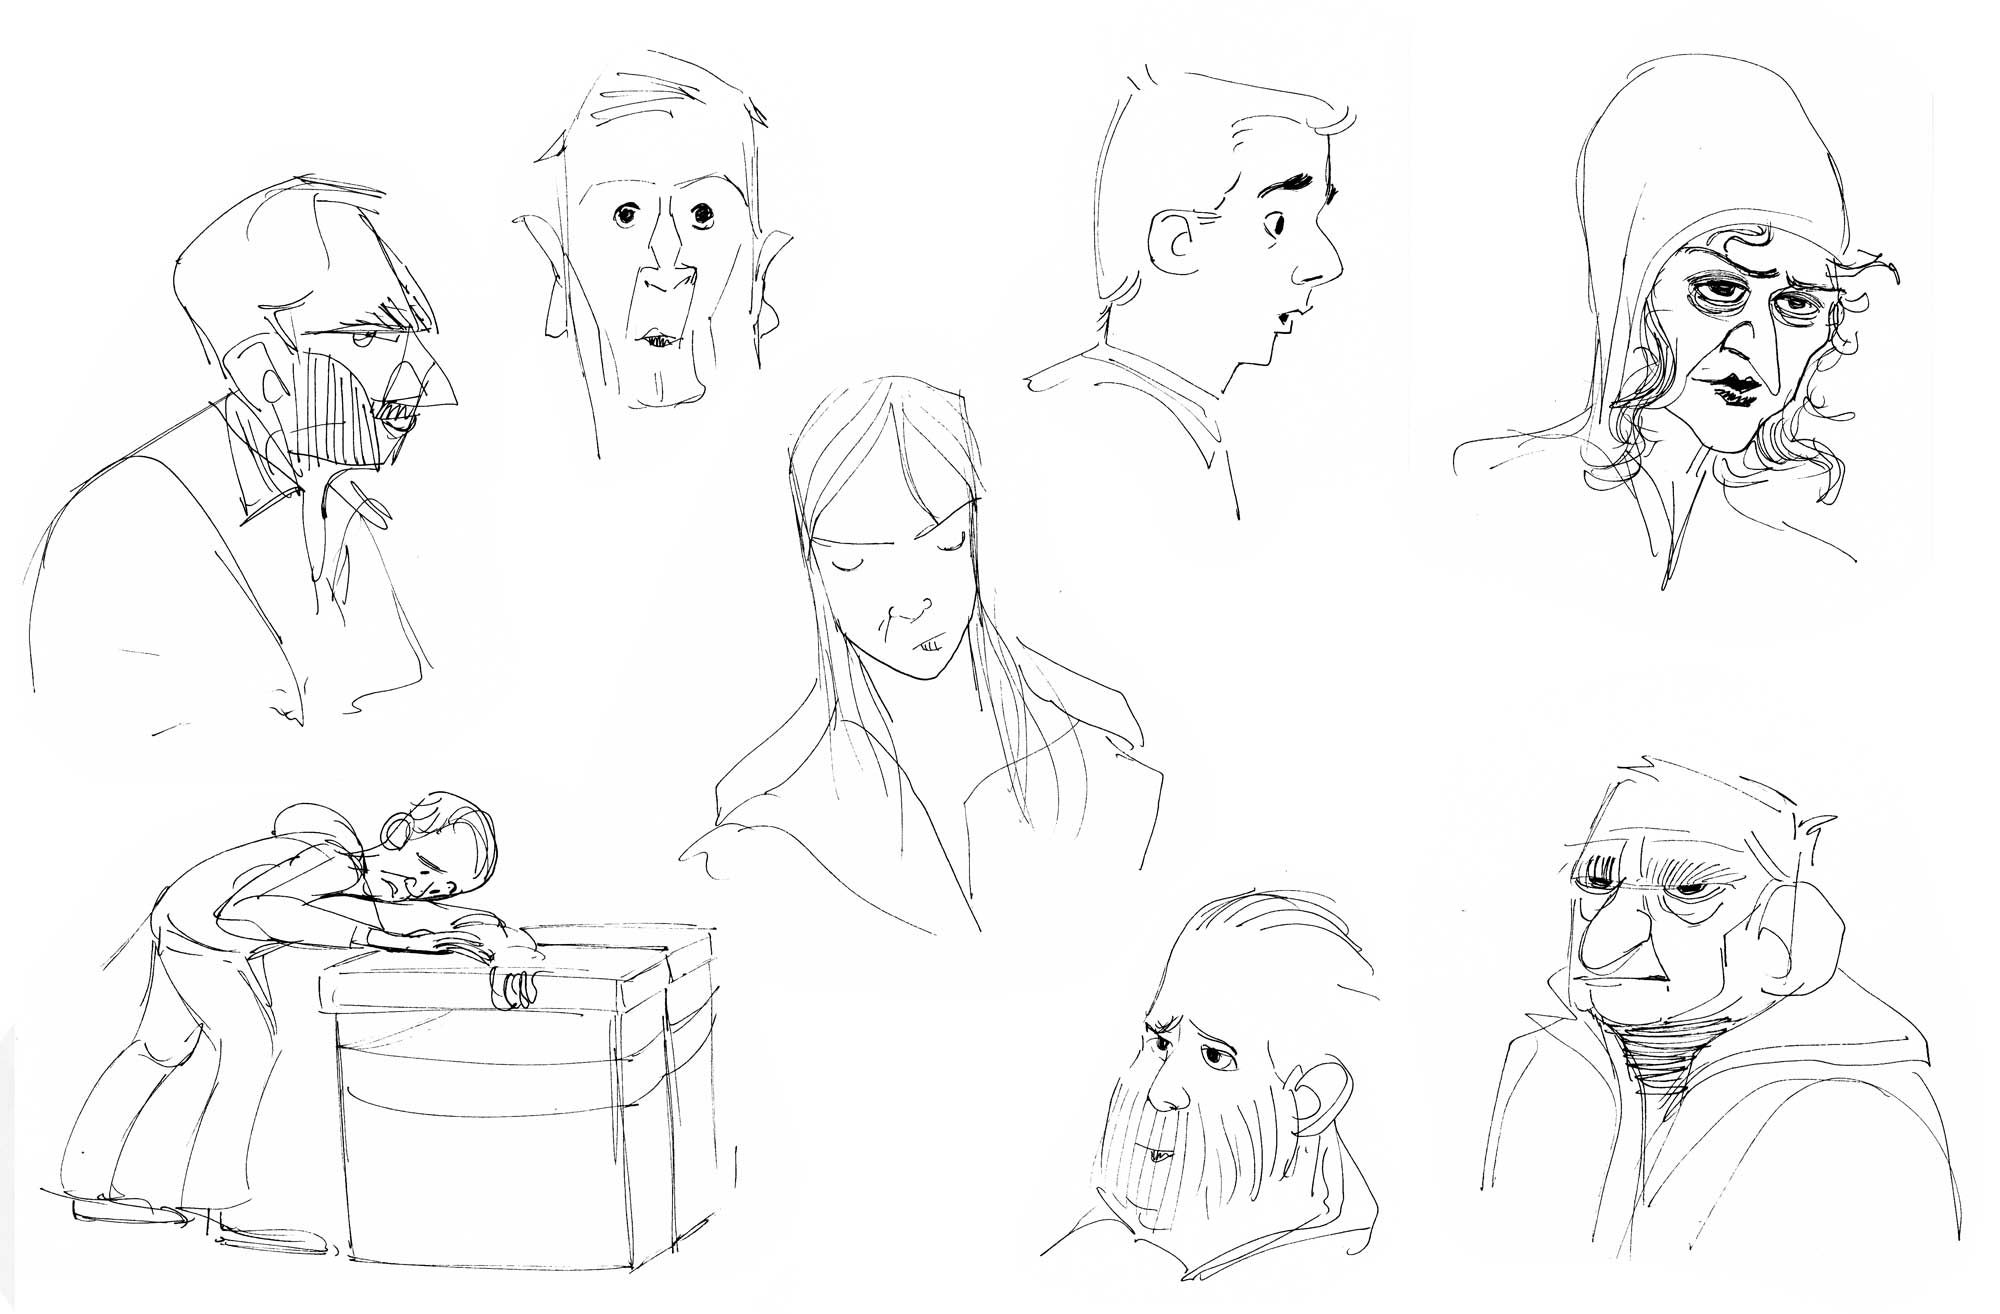 lifesketches_week5_F.jpg